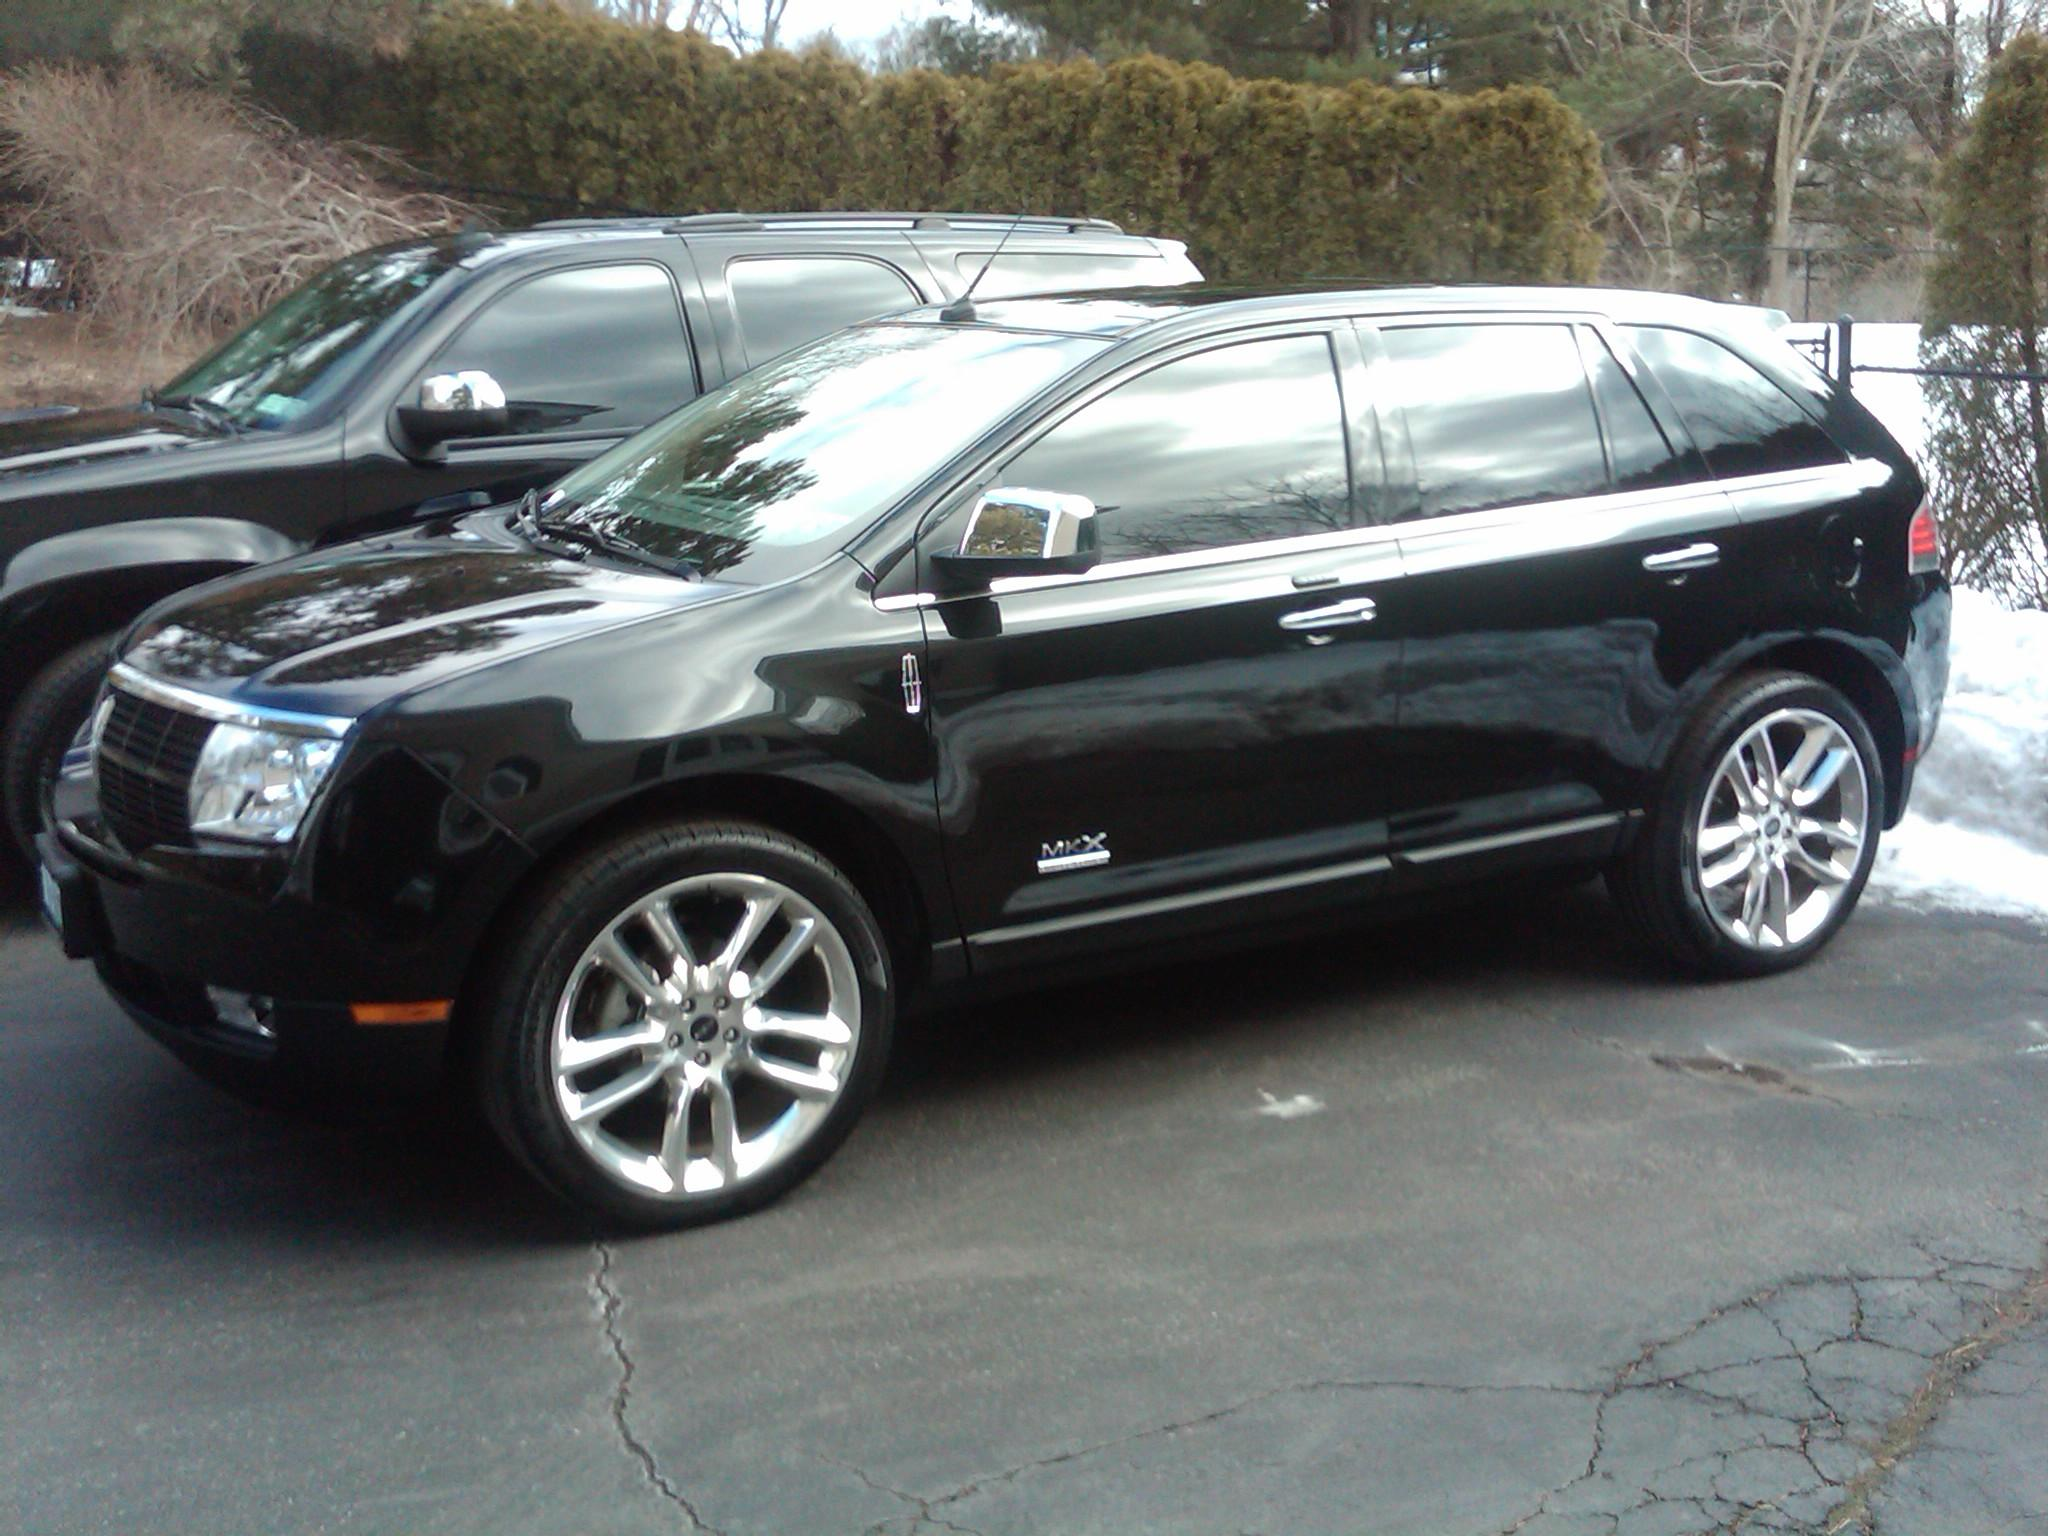 suv front mkx base lincoln price photos interior wheel features drive seats reviews